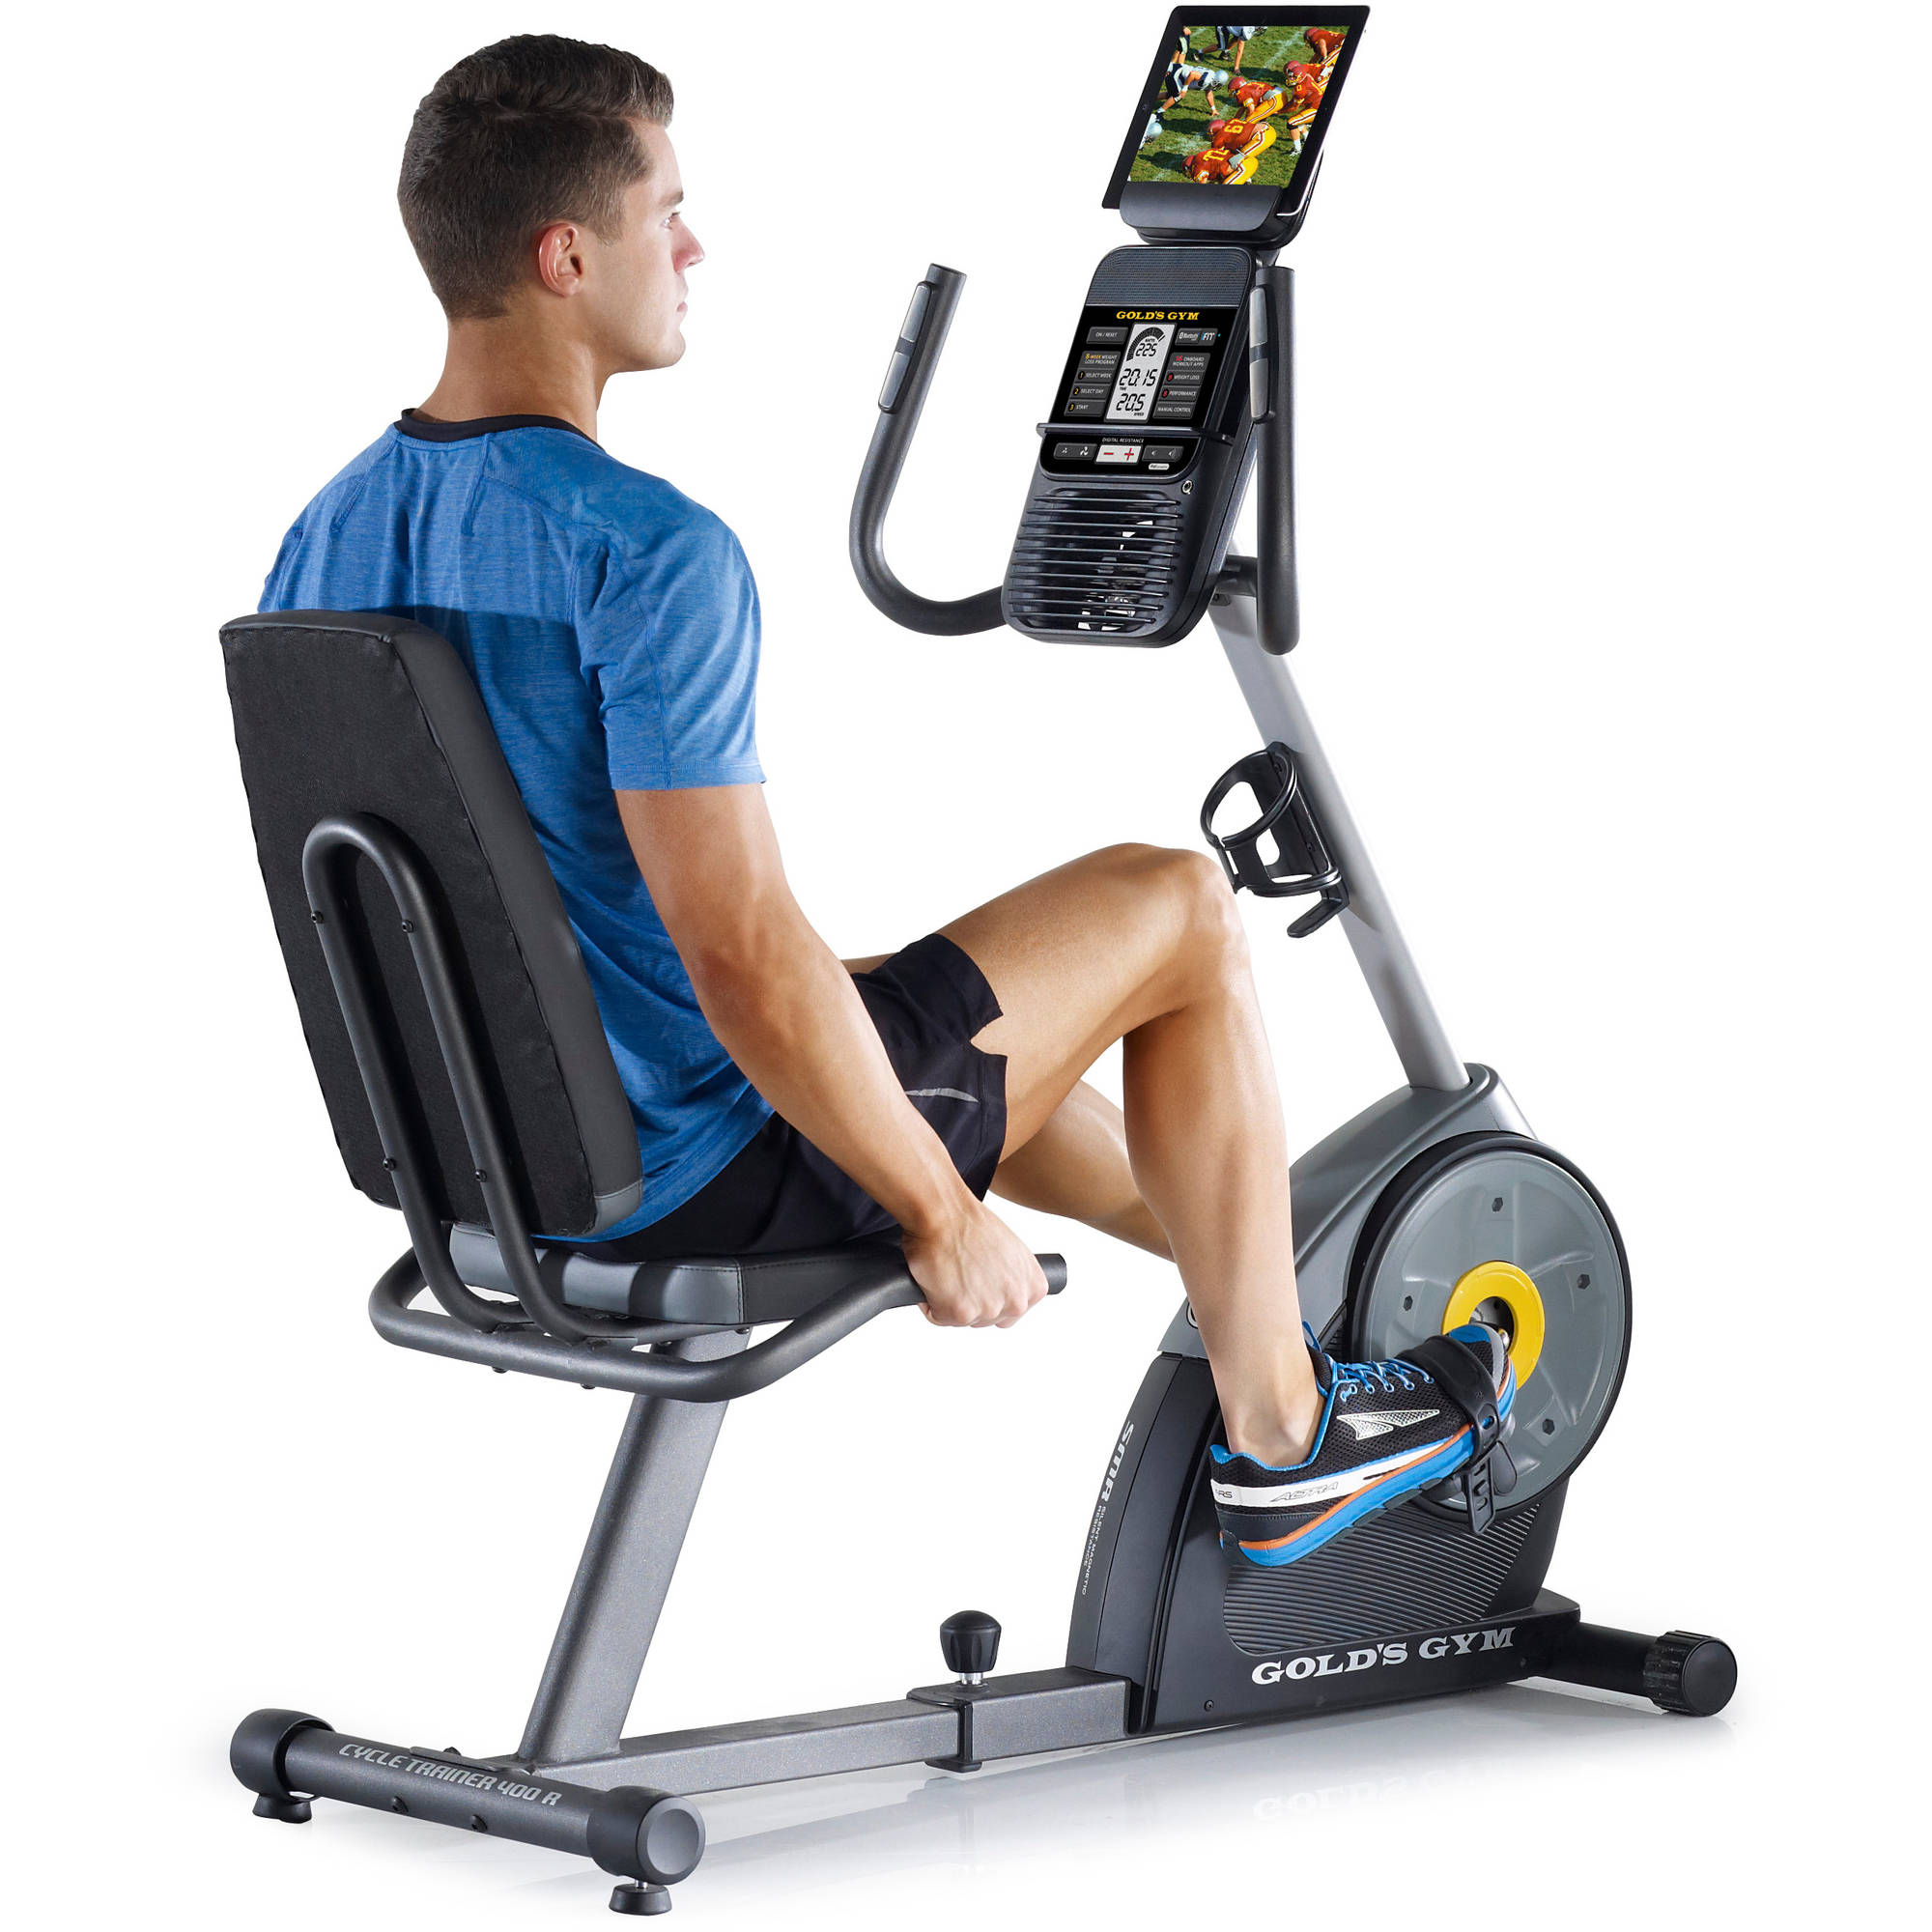 Gold's Gym Cycle Trainer 400 Ri Recumbent Exercise Bike by Icon Health & Fitness Inc.